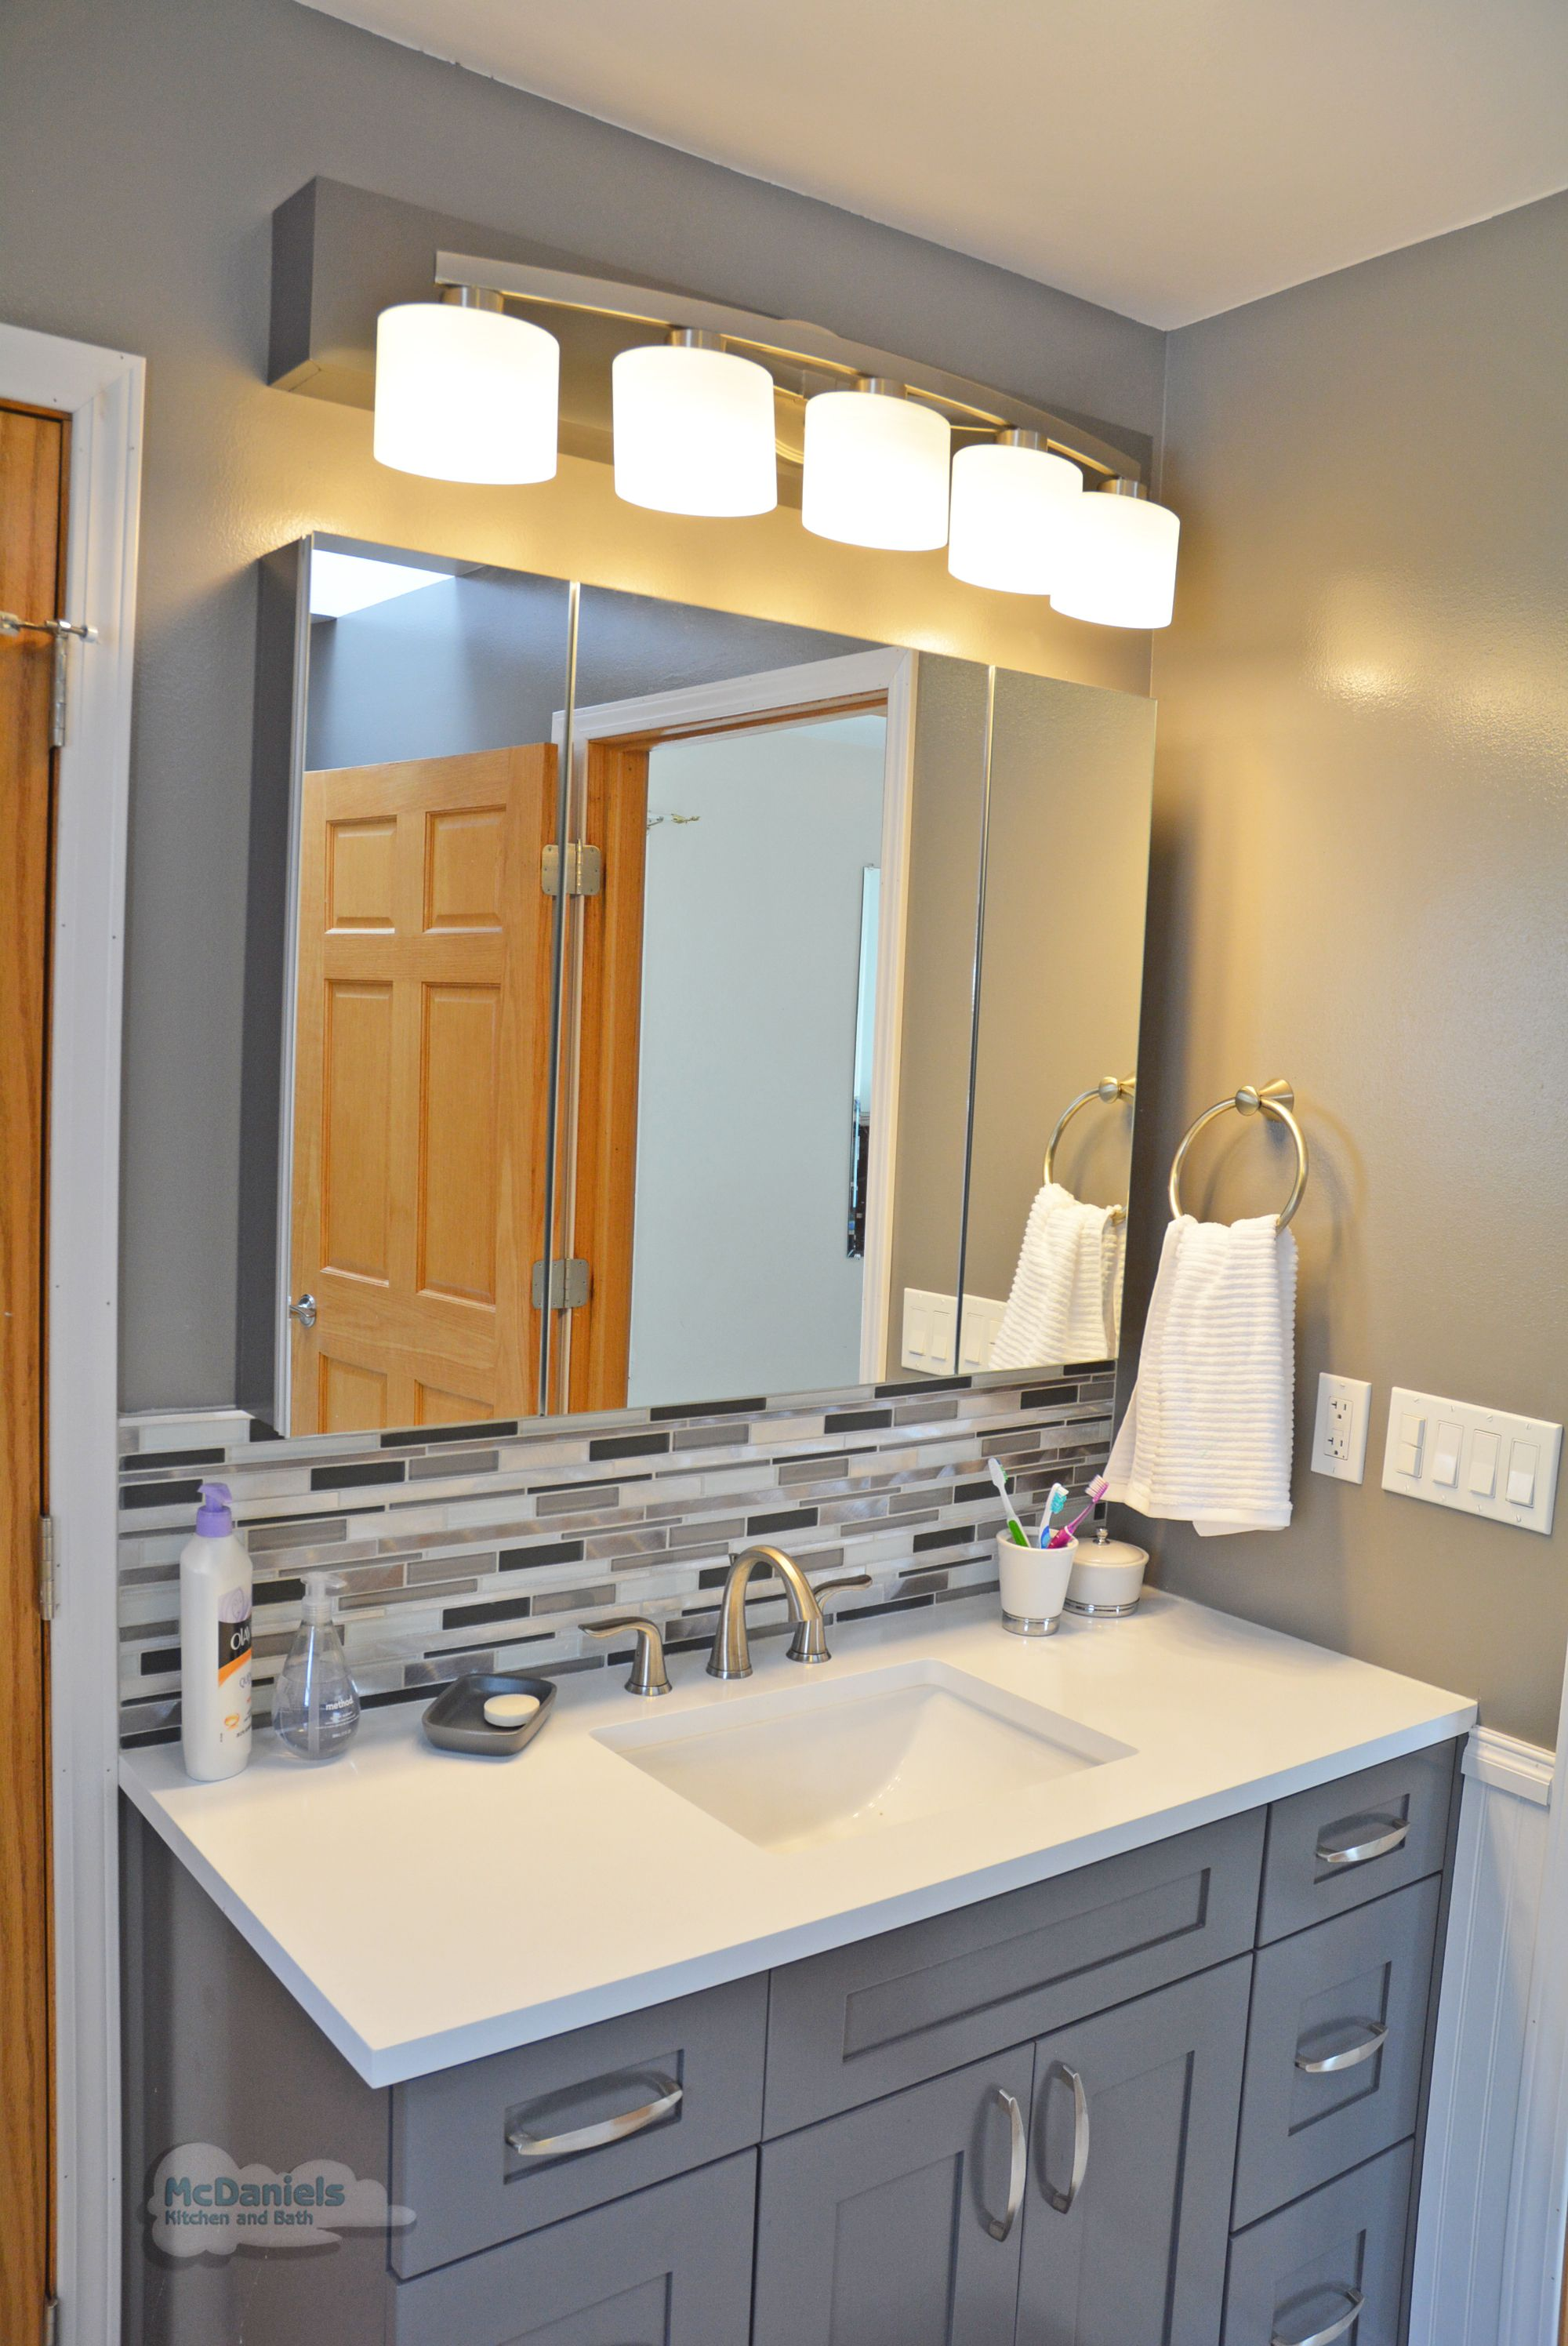 This Contemporary Bathroom Design In A Cool Gray Color Scheme Offers A Relaxing Space The Gra Bathroom Design Tile Backsplash Bathroom Small Bathroom Remodel New bathroom backsplash ideas home